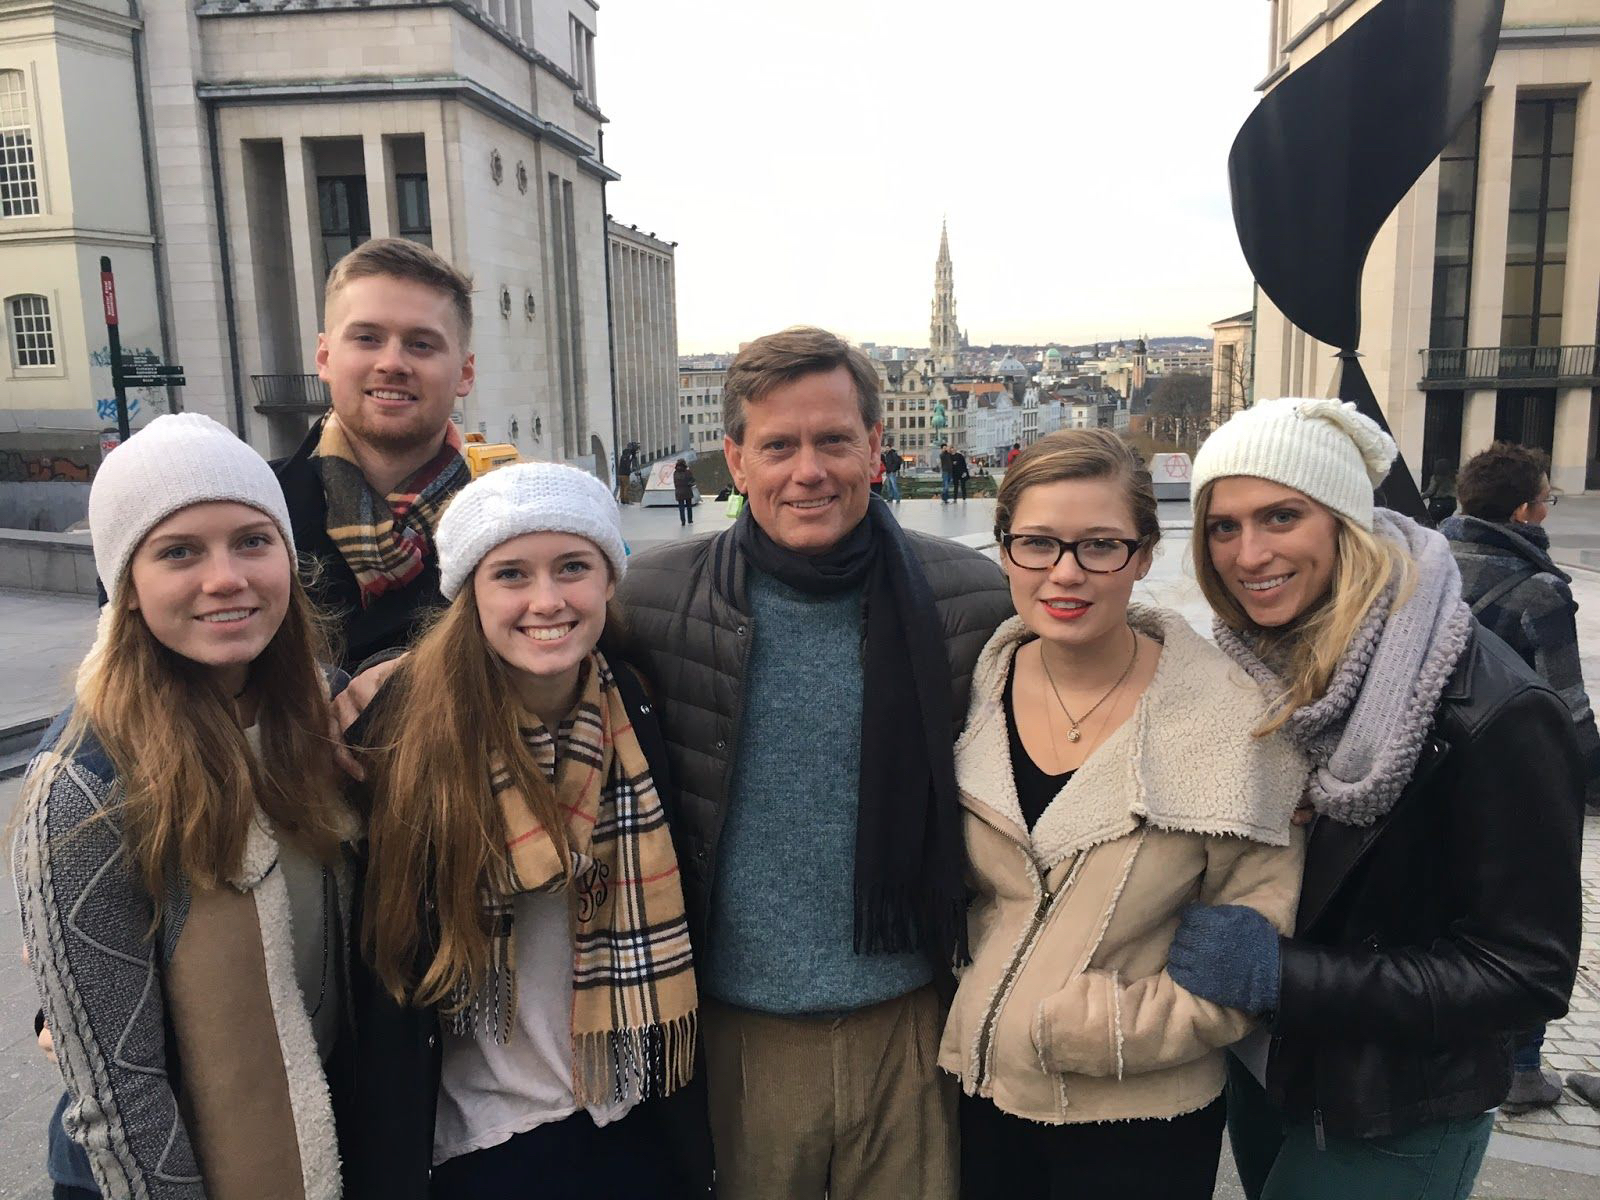 Lawson Pedigo and his five children on vacation in Brussels during Christmas 2015—a destination they chose so they could connect and worship with a CTC-supported church in the city.